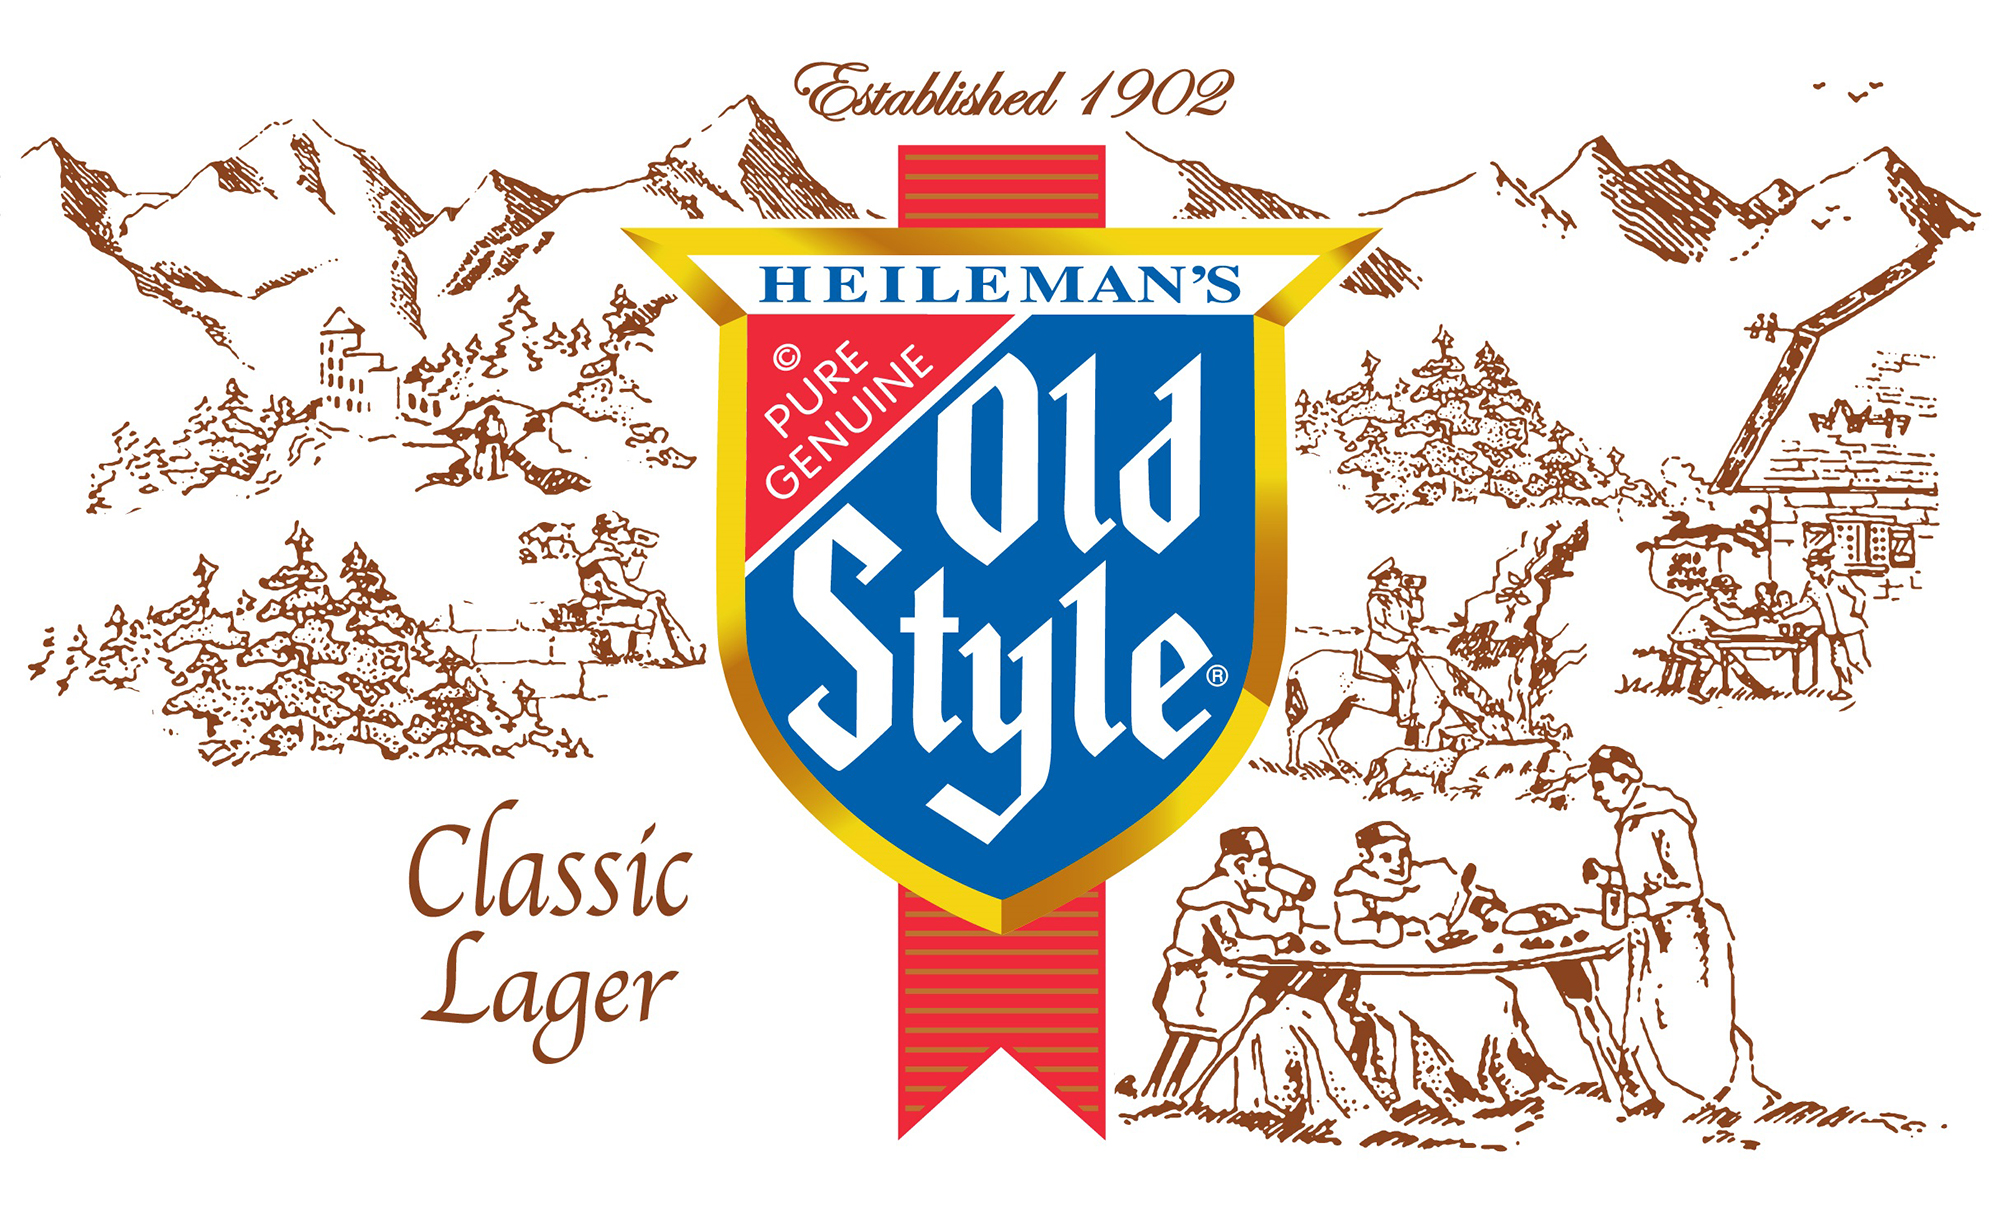 Pabst Brewing Company's Old Style